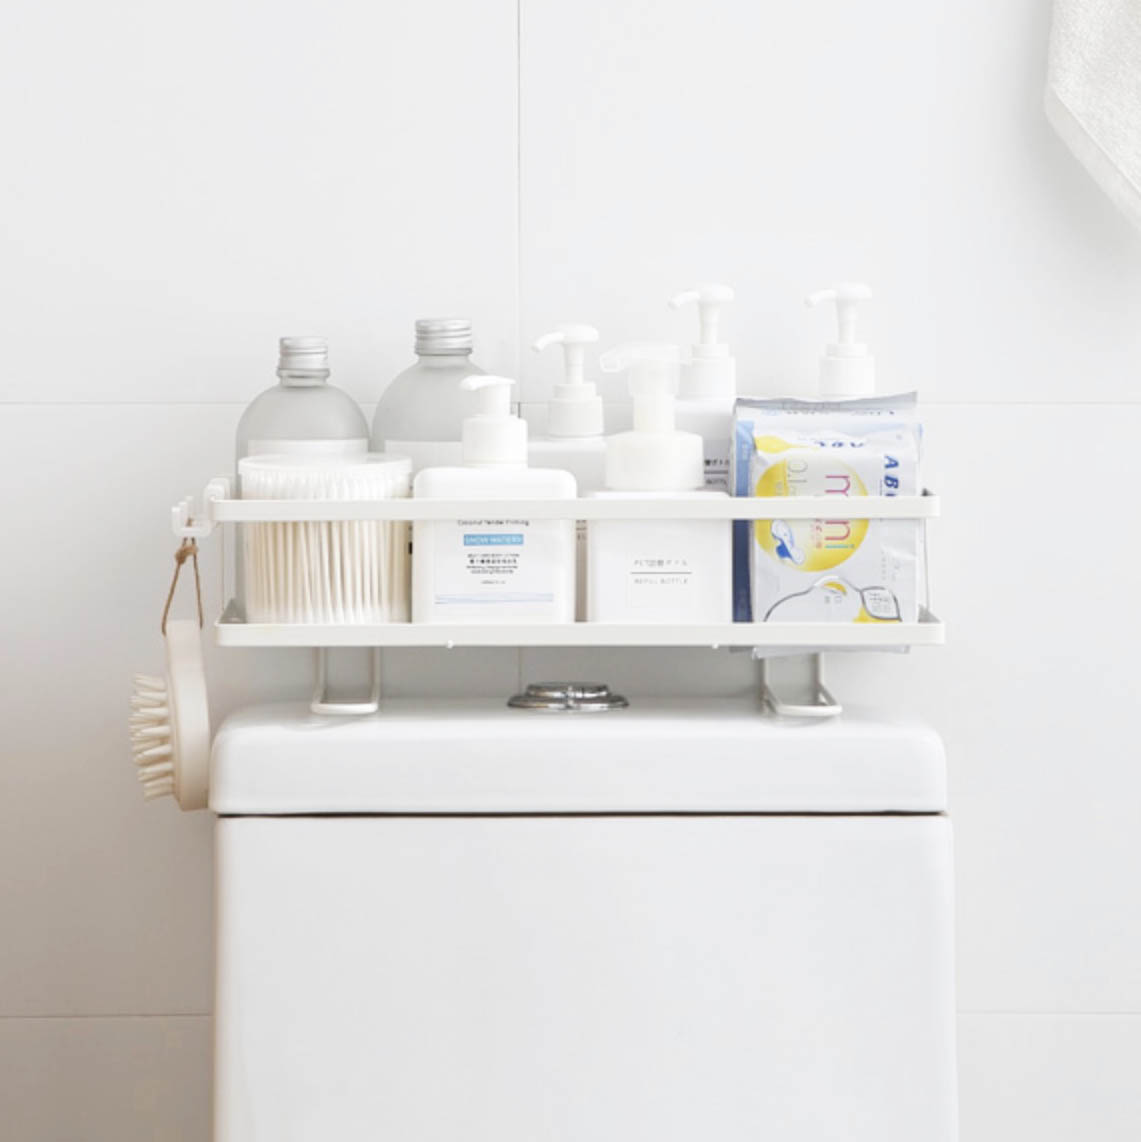 Toiletries in organizer rack placed on top of toilet